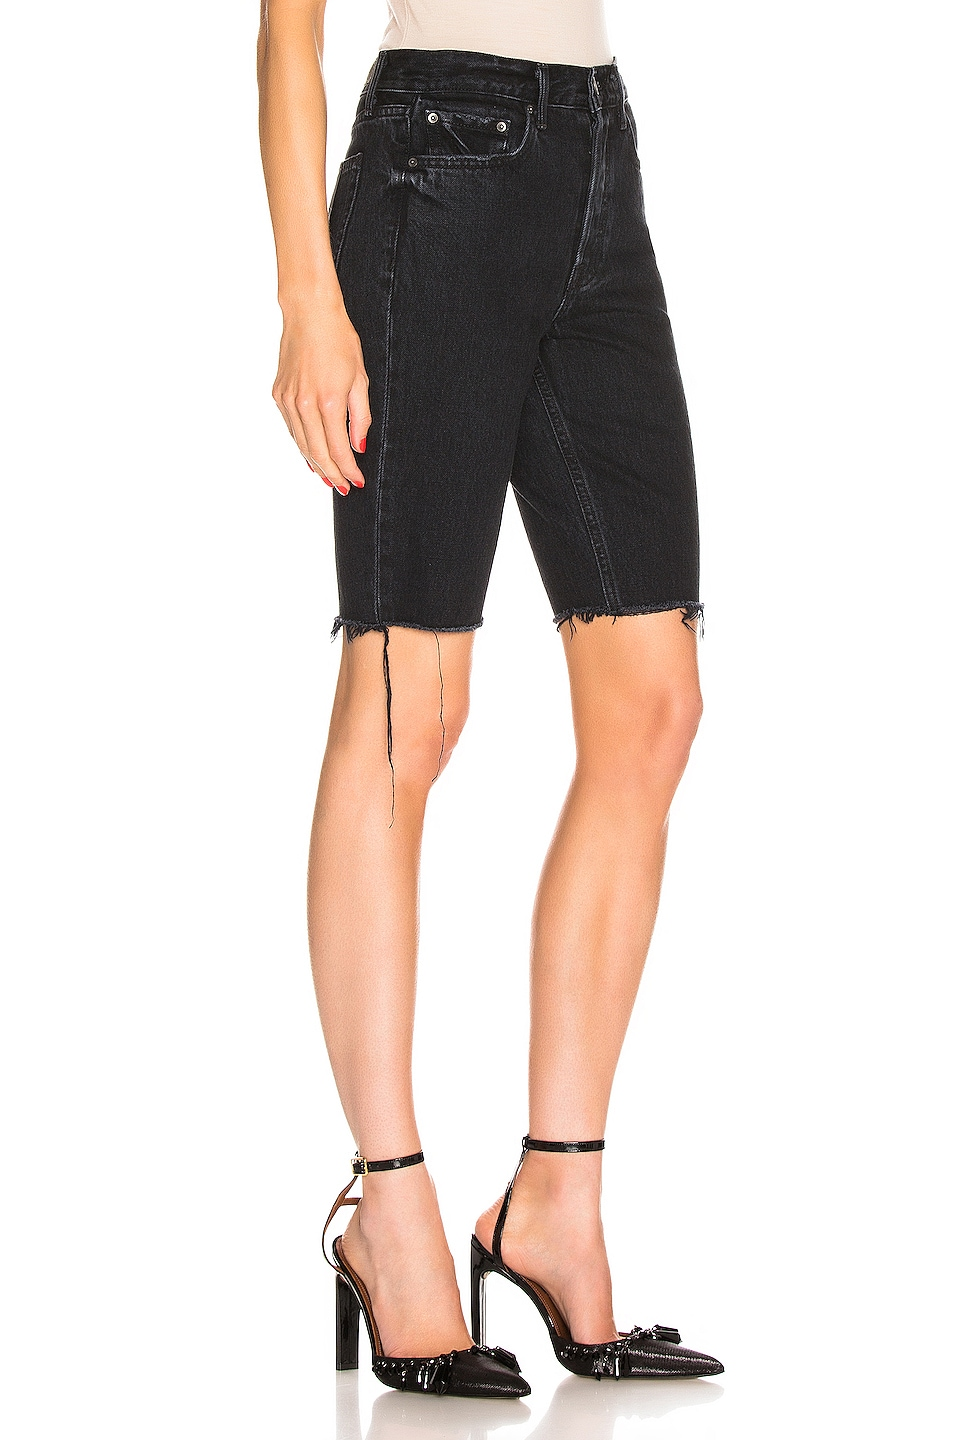 Grlfrnd Shorts Beverly High Rise Long Biker Short